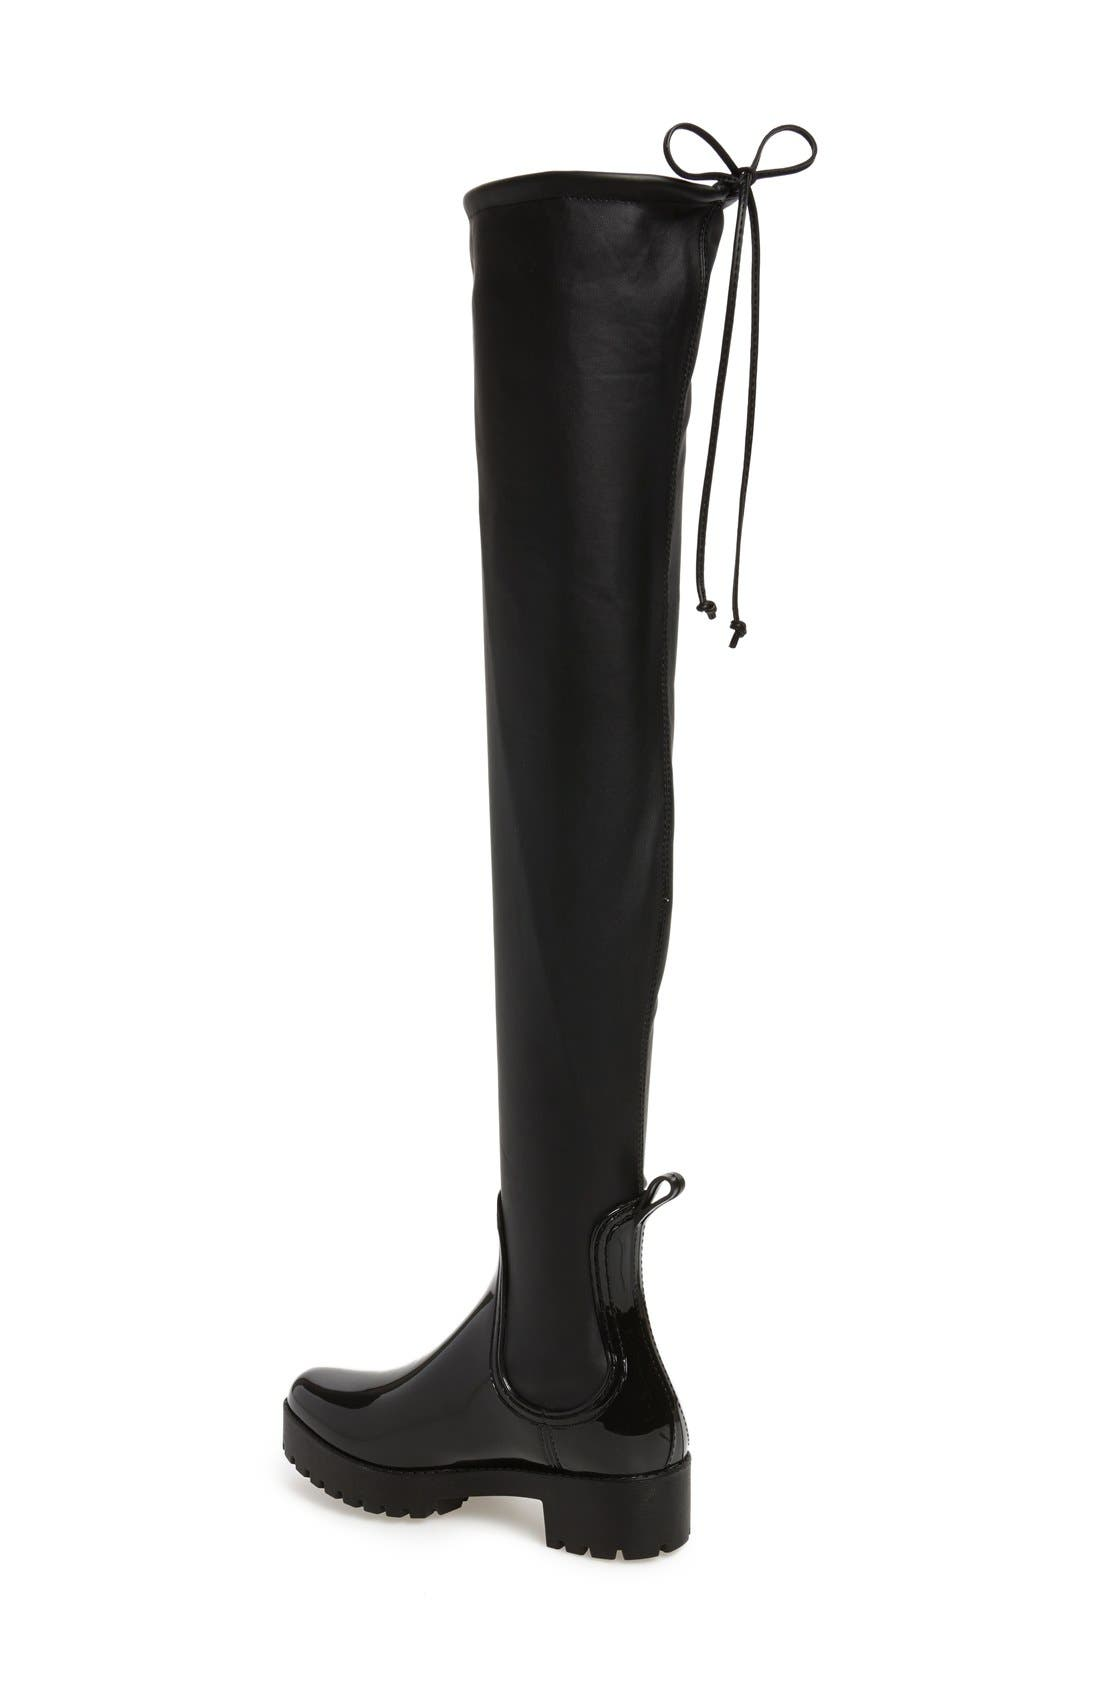 Cloudy Over the Knee Rain Boot,                             Alternate thumbnail 2, color,                             005